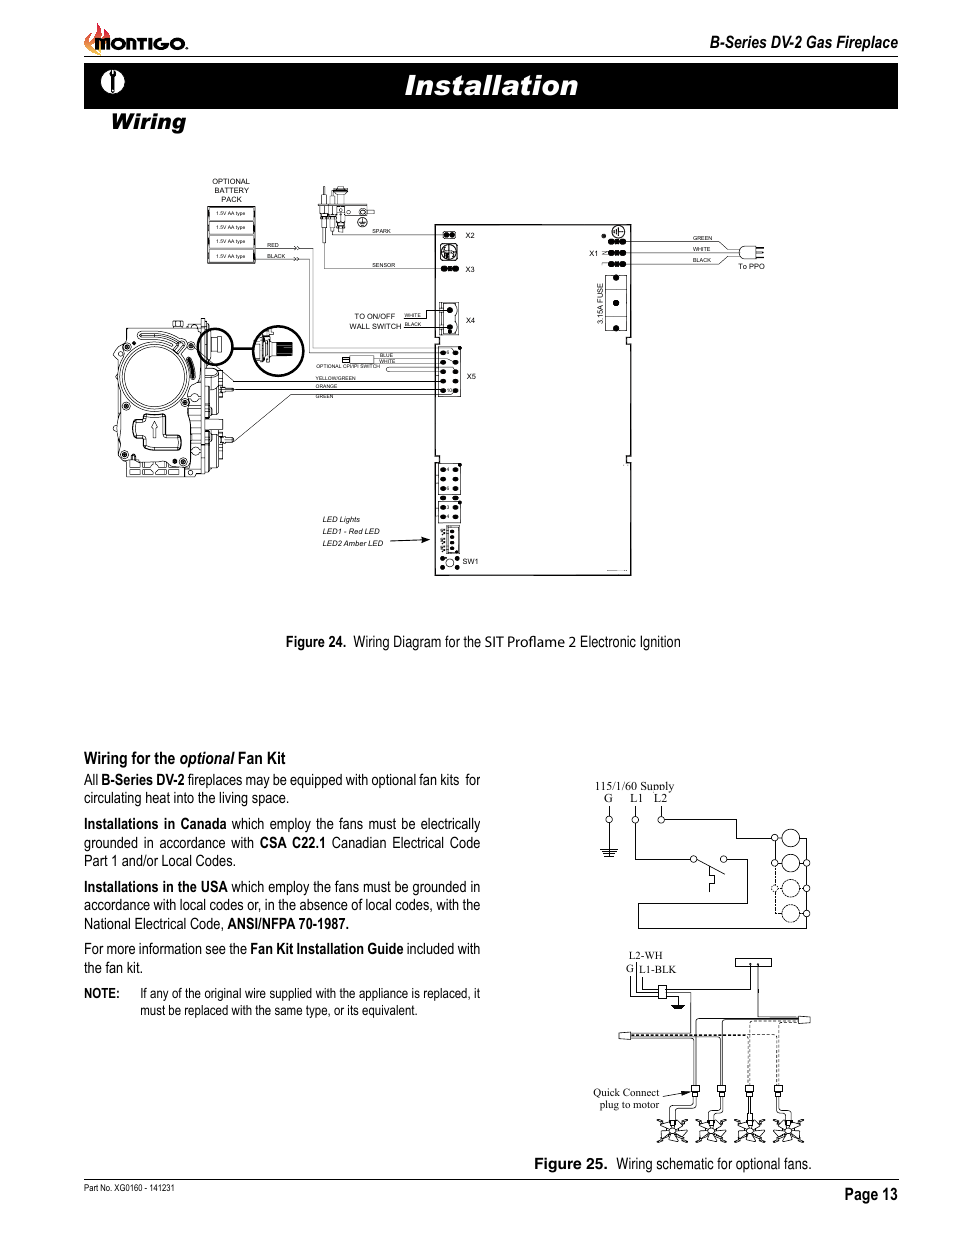 installation, wiring, page 13 b-series dv-2 gas fireplace | montigo b34dv  user manual | page 13 / 26